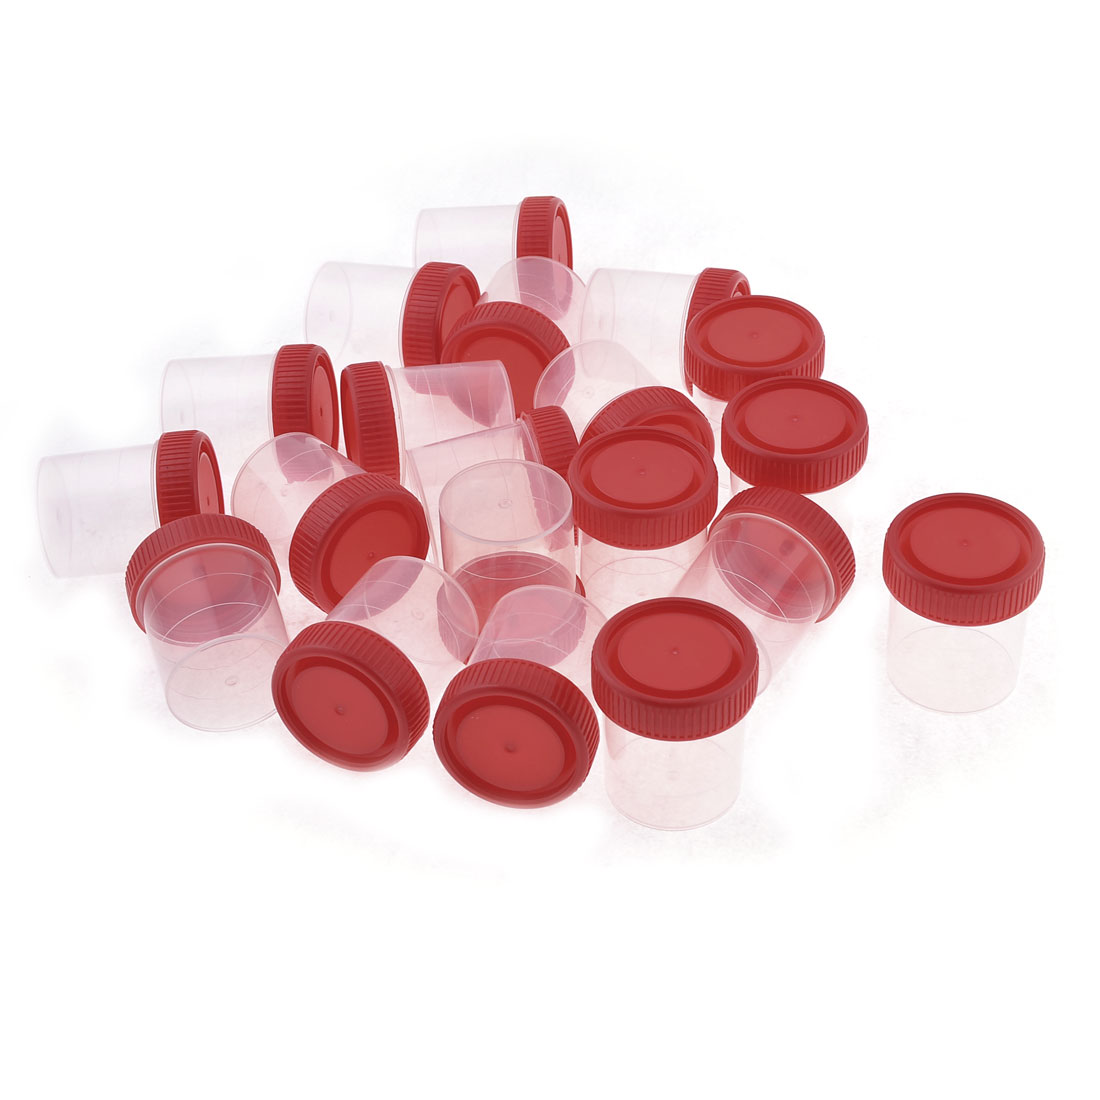 20pcs Clear Plastic Rounded Shaped Urine Test Cups 60mL w Red Cover